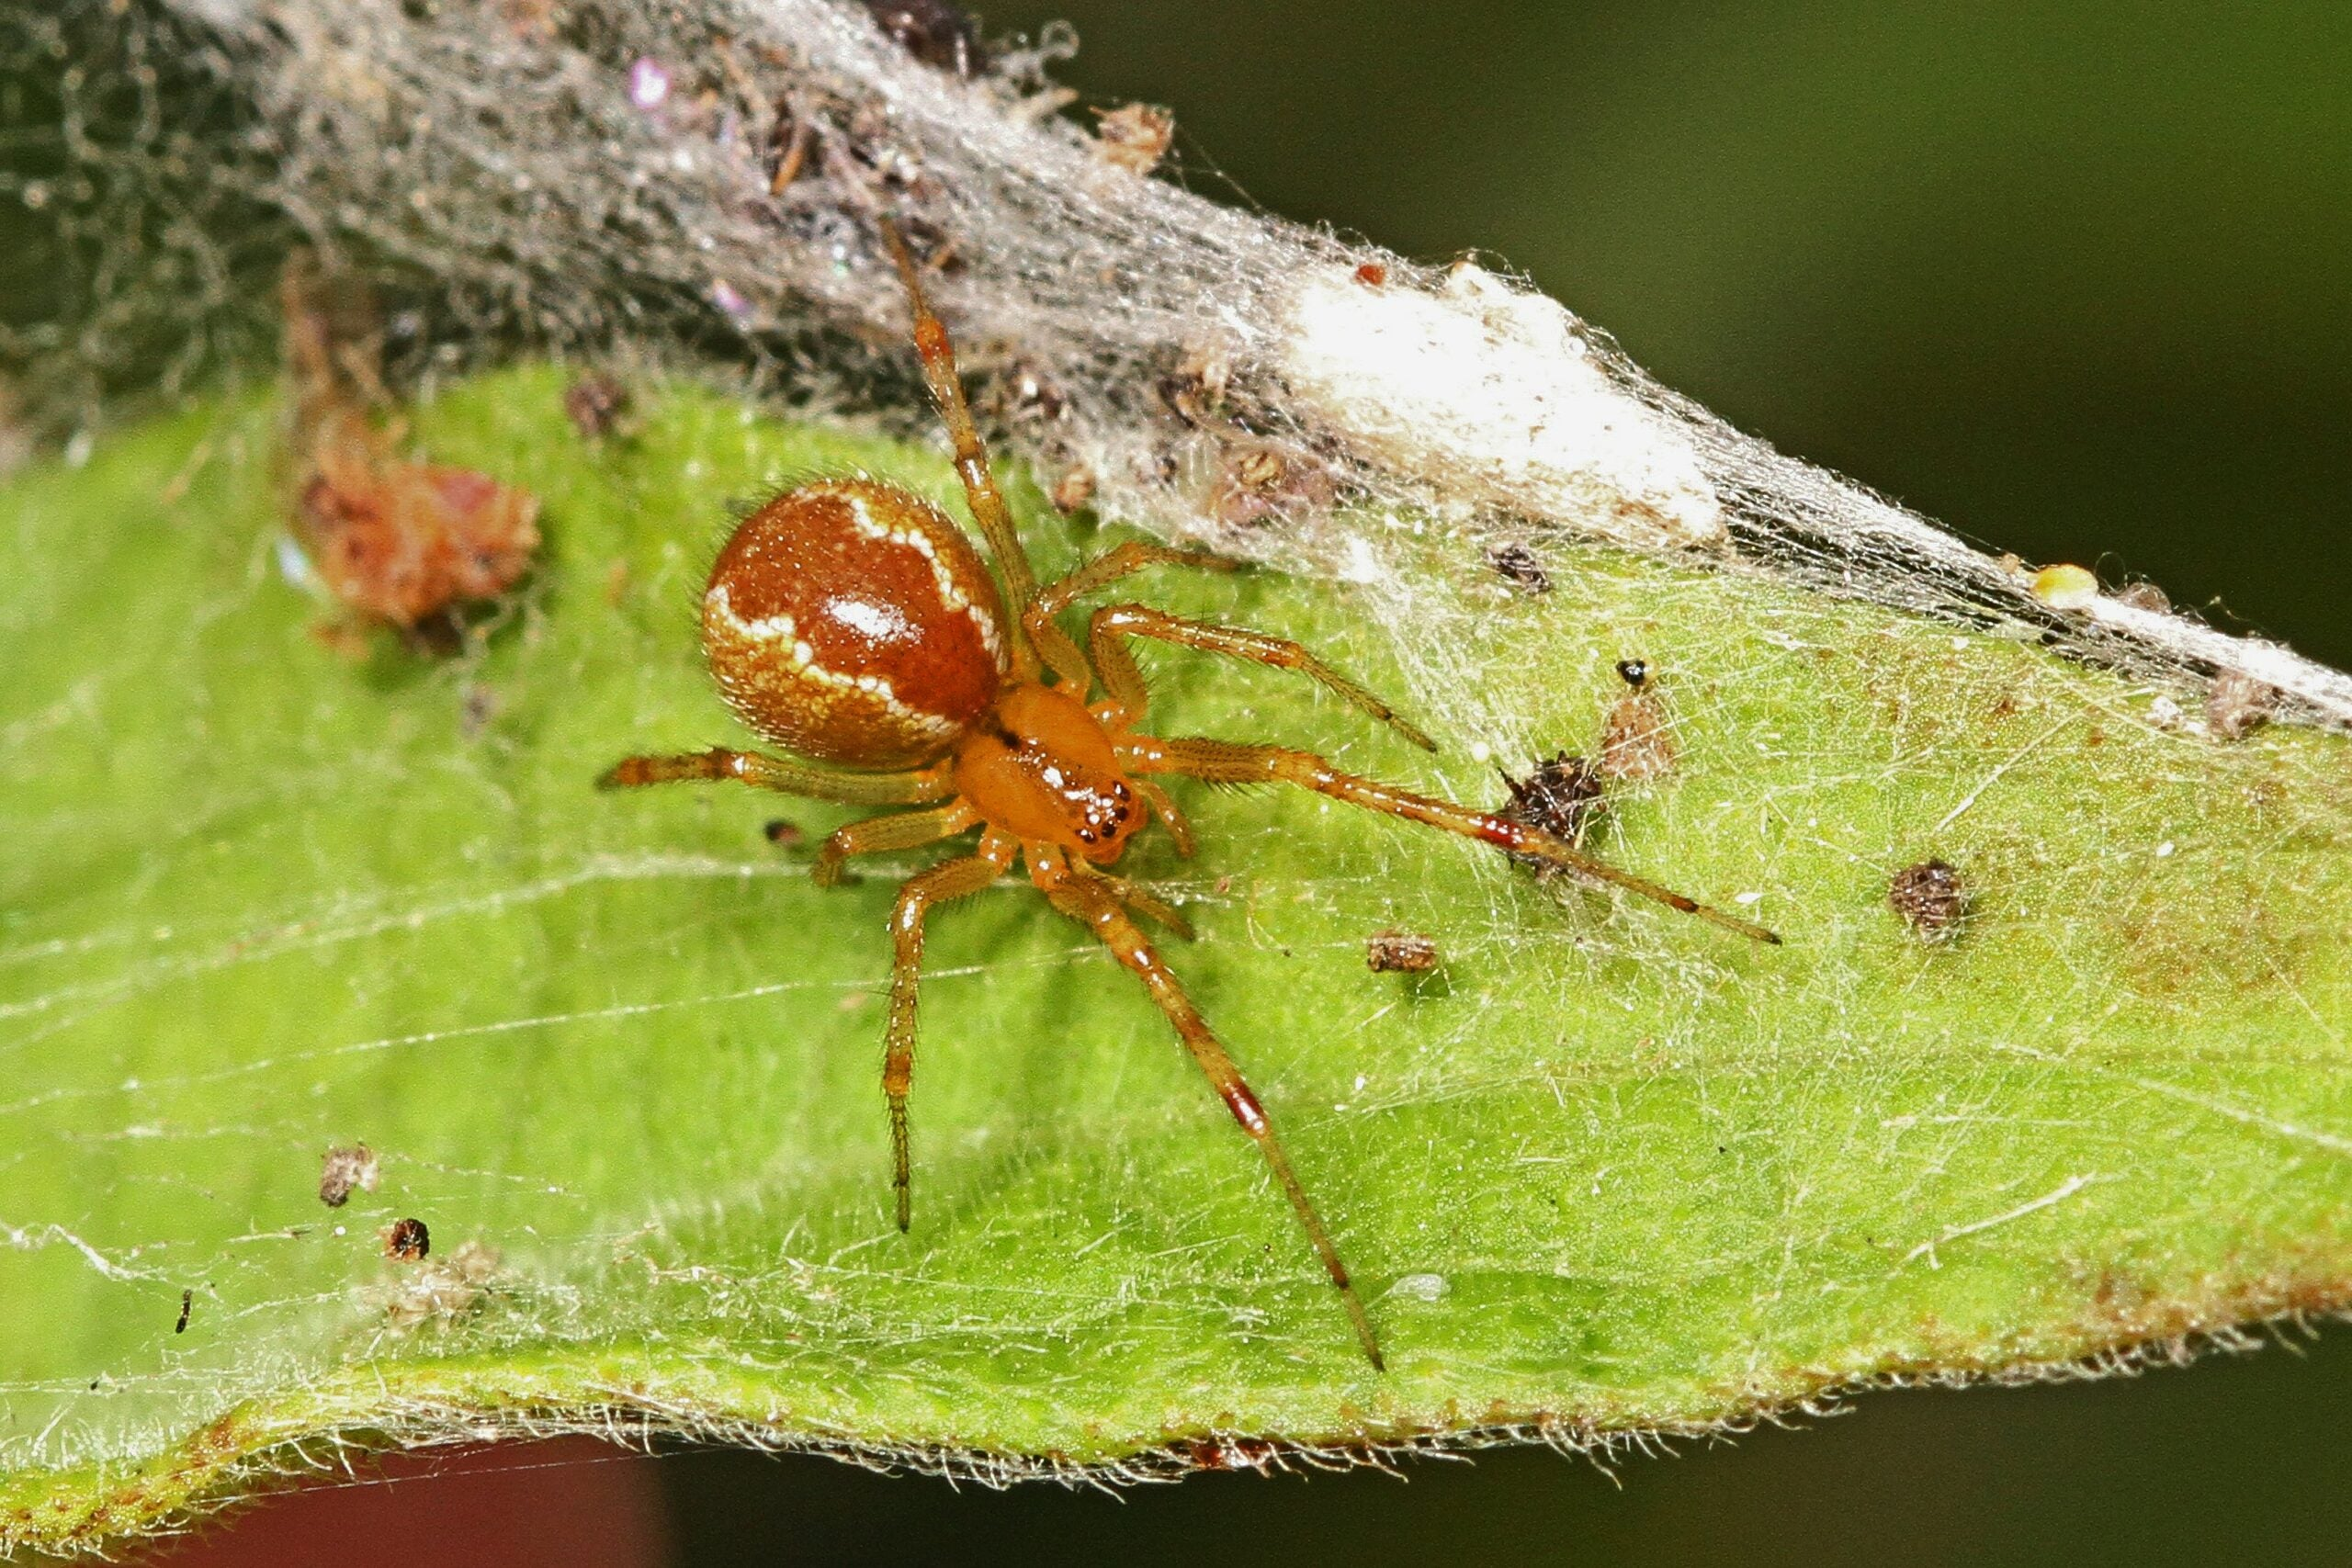 Extreme weather is making these spiders extra feisty